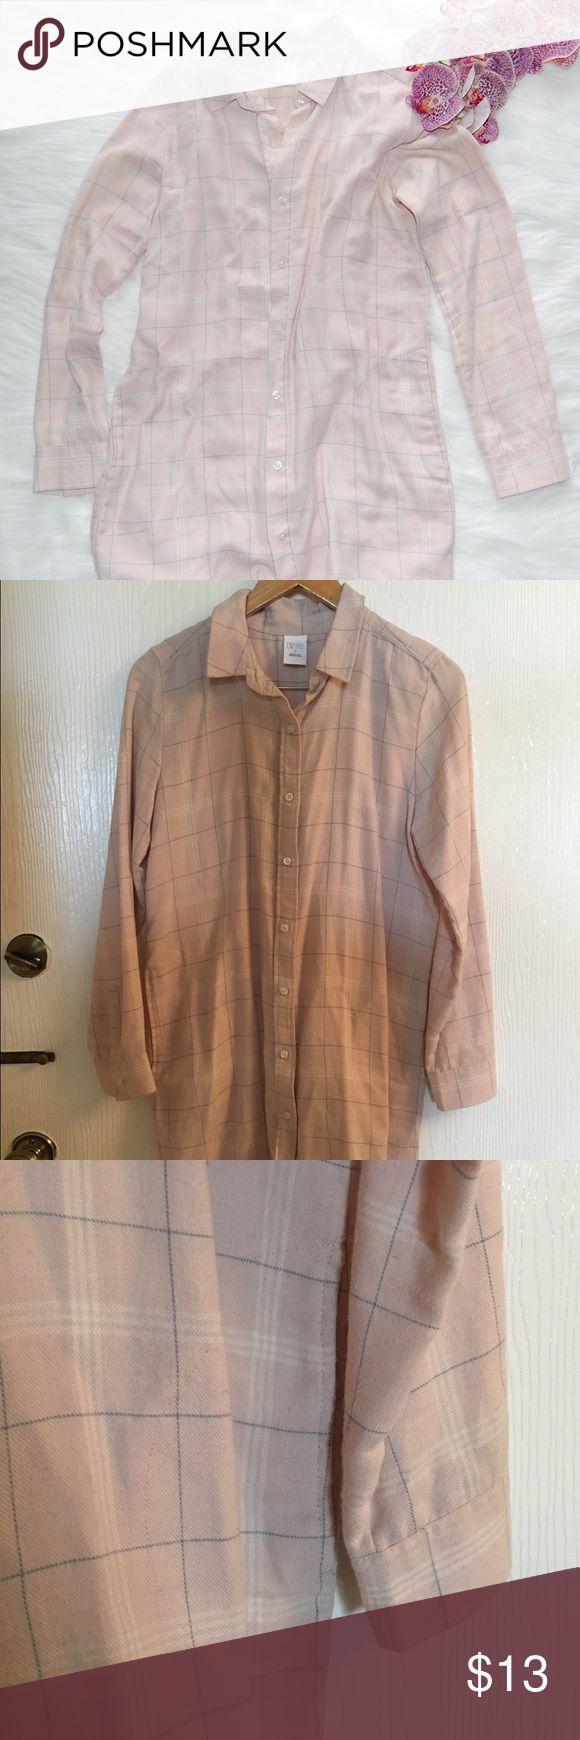 BP Long Flannel Shirt Pink and white/blue long flannel. Has pockets! Cotton/polyester blend. bp Tops Button Down Shirts